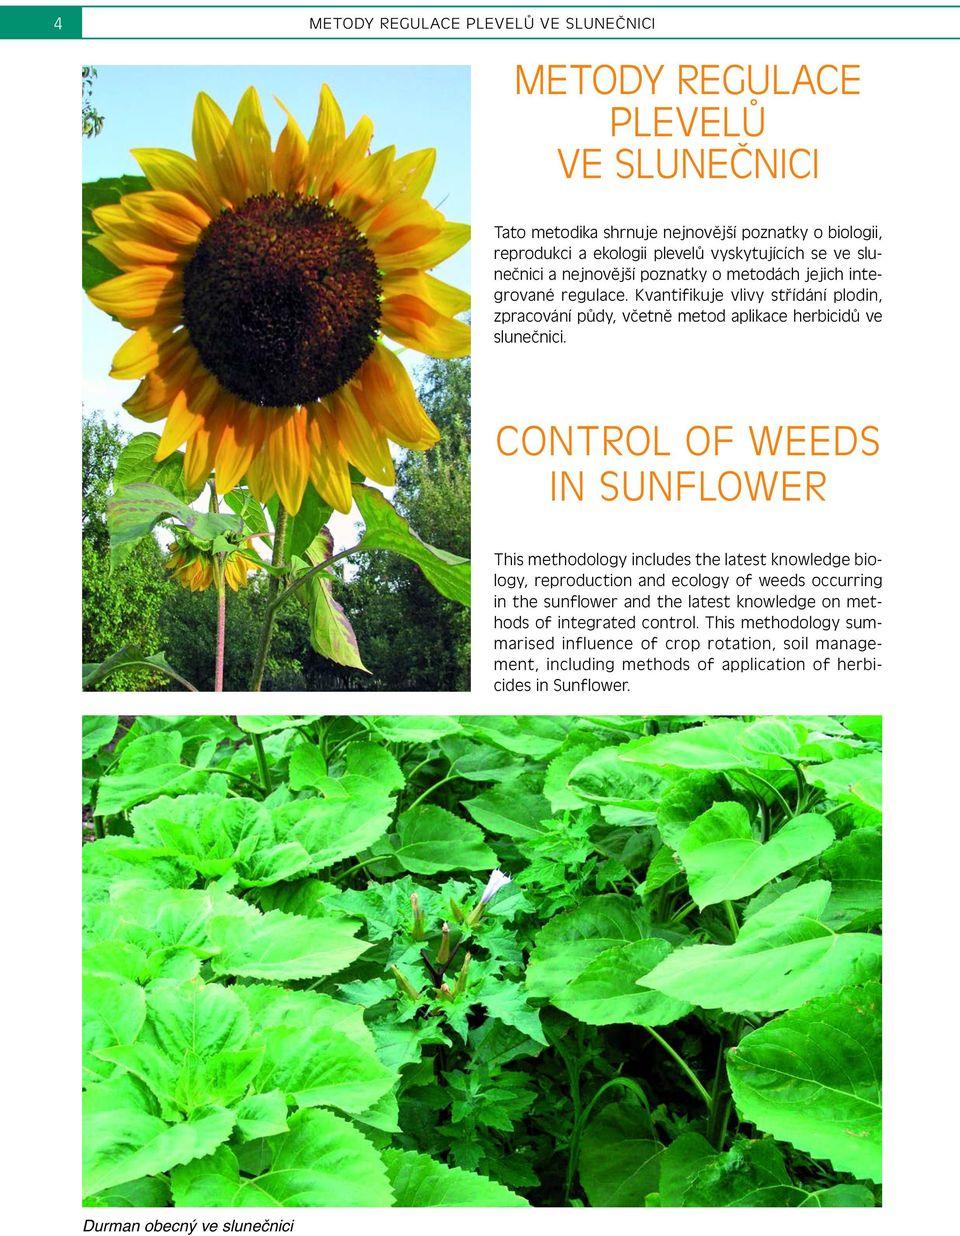 CONTROL OF WEEDS IN SUNFLOWER This methodology includes the latest knowledge biology, reproduction and ecology of weeds occurring in the sunflower and the latest knowledge on